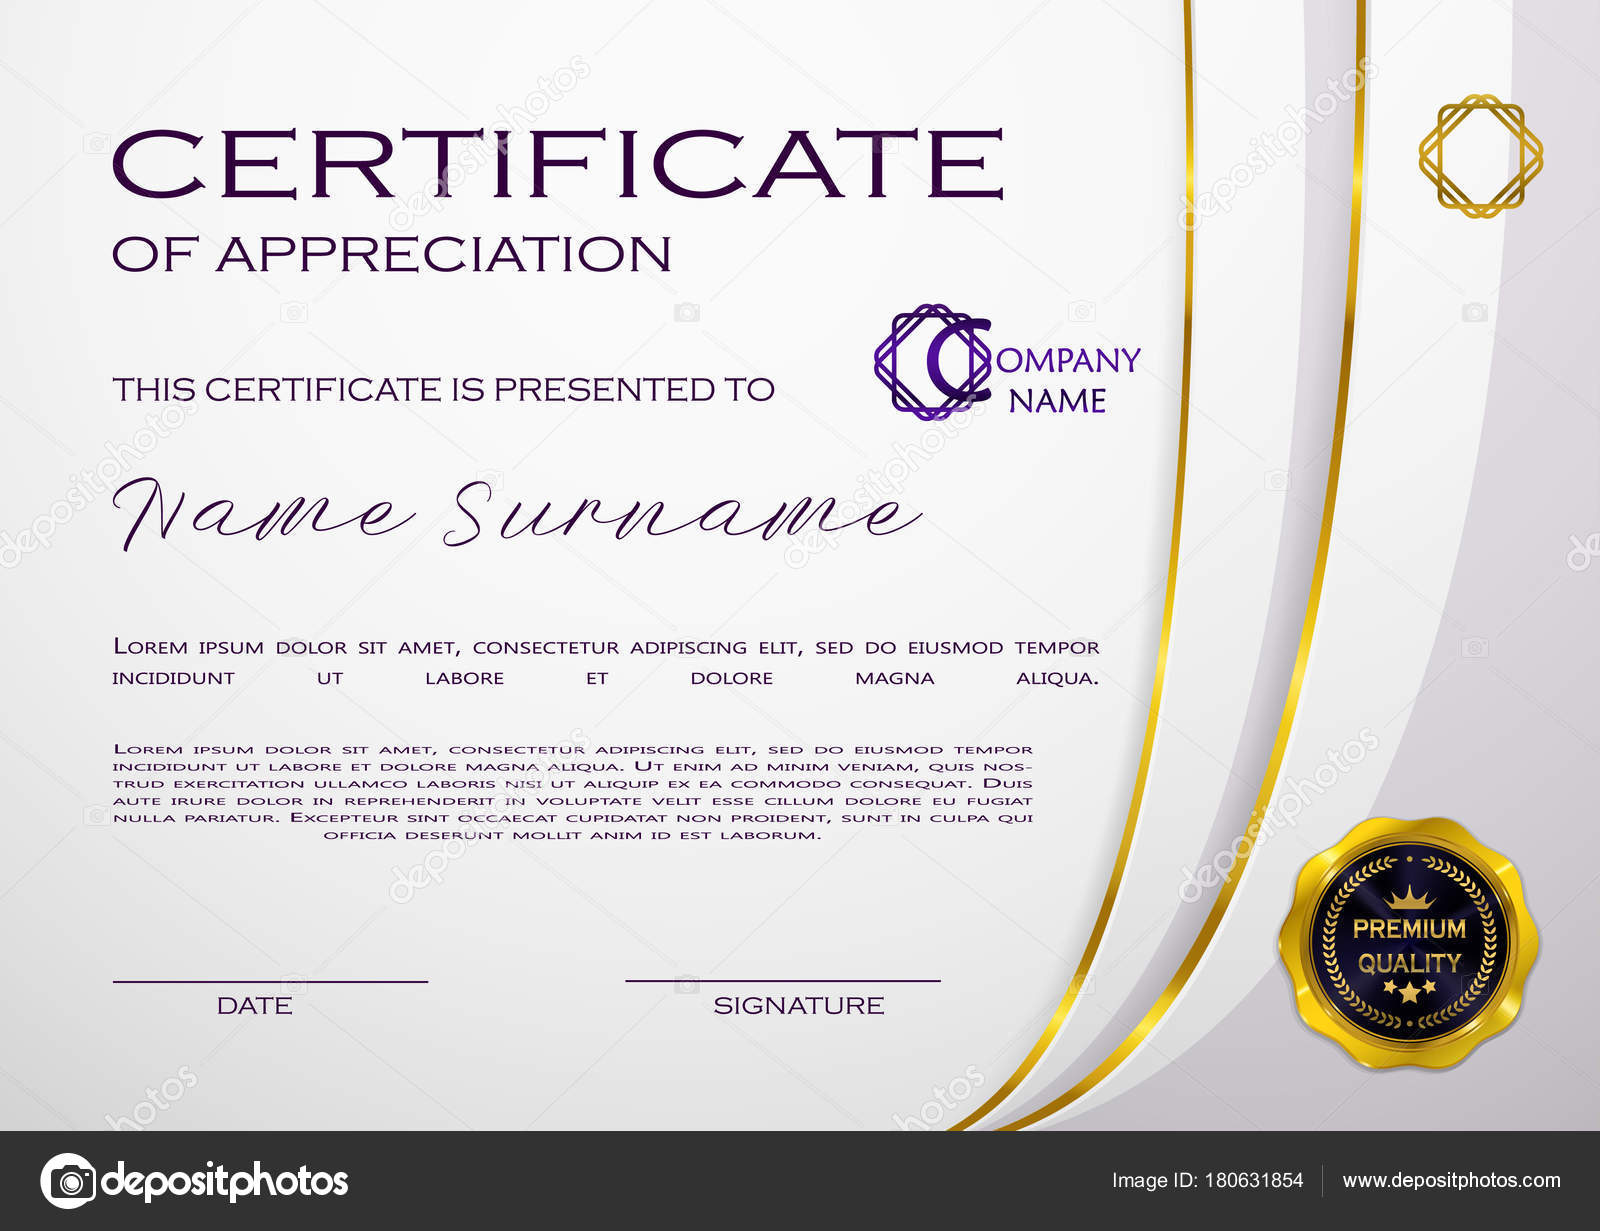 Qualification certificate appreciation design elegant luxury qualification certificate of appreciation design elegant luxury and modern pattern best quality award template with white and golden tapes shapes badge 1betcityfo Gallery